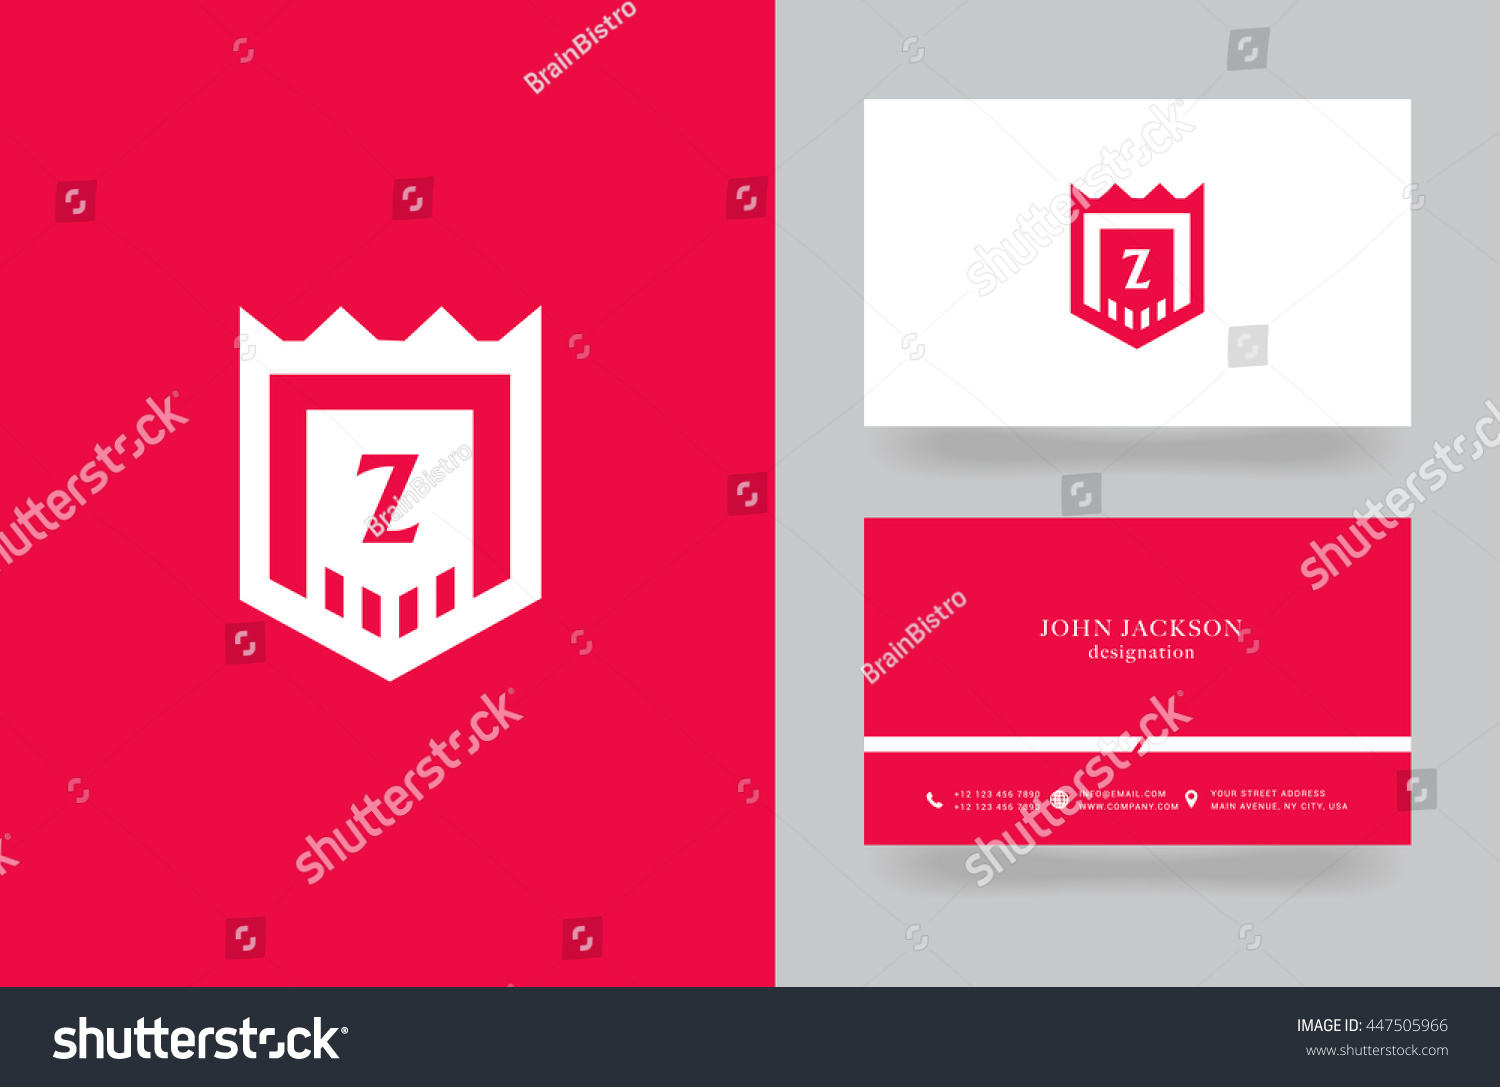 Amazing 1 Page Resumes Thick 10 Envelope Template Indesign Round 100 Day Plan Template 10x13 Envelope Template Young 16x20 Collage Template Coloured18th Birthday Invitation Templates Z Letter Logo On Shield Shape Stock Vector 447505966   Shutterstock